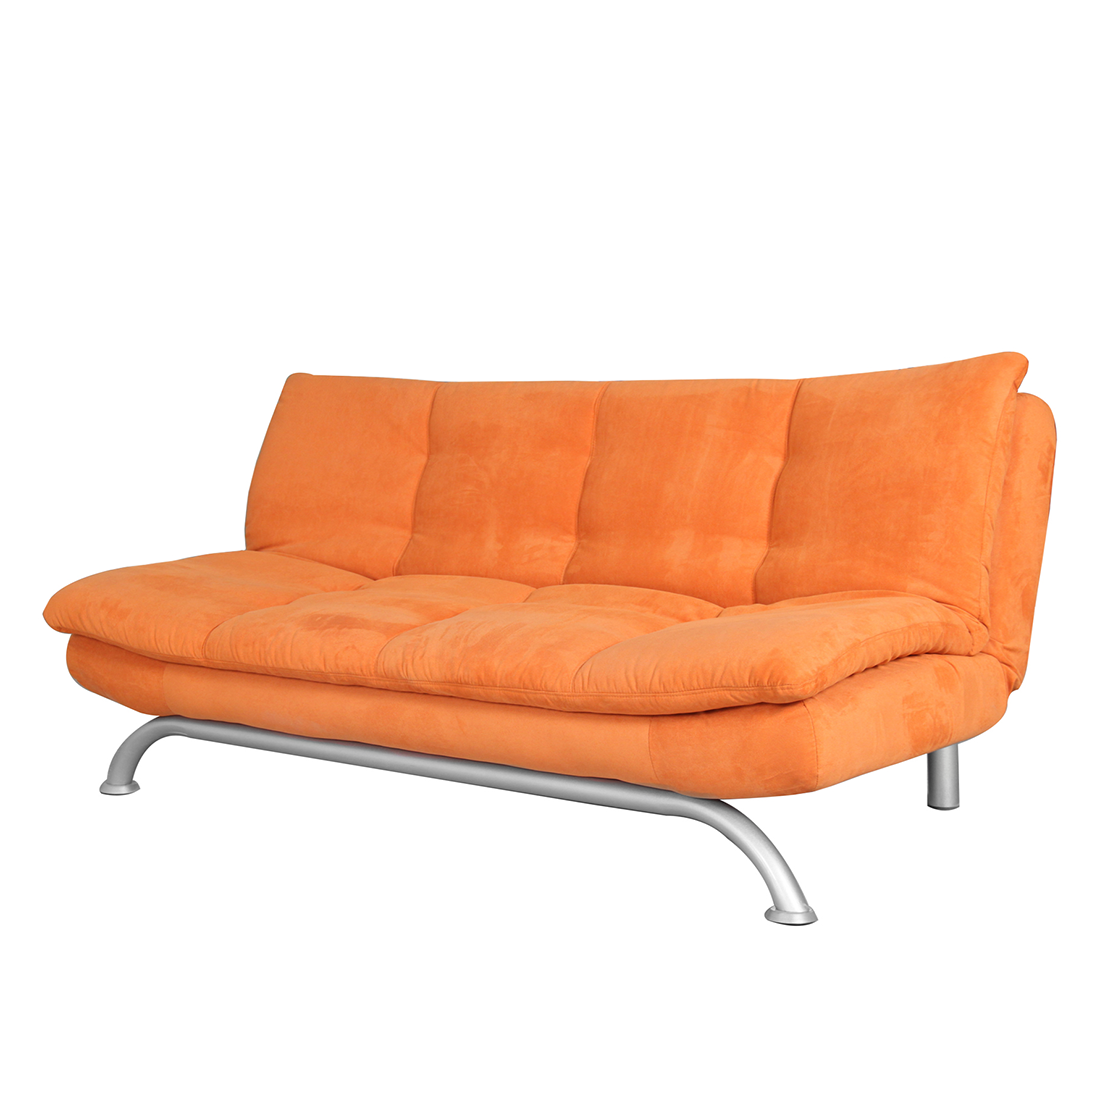 schlafsofa orange bestseller shop f r m bel und. Black Bedroom Furniture Sets. Home Design Ideas